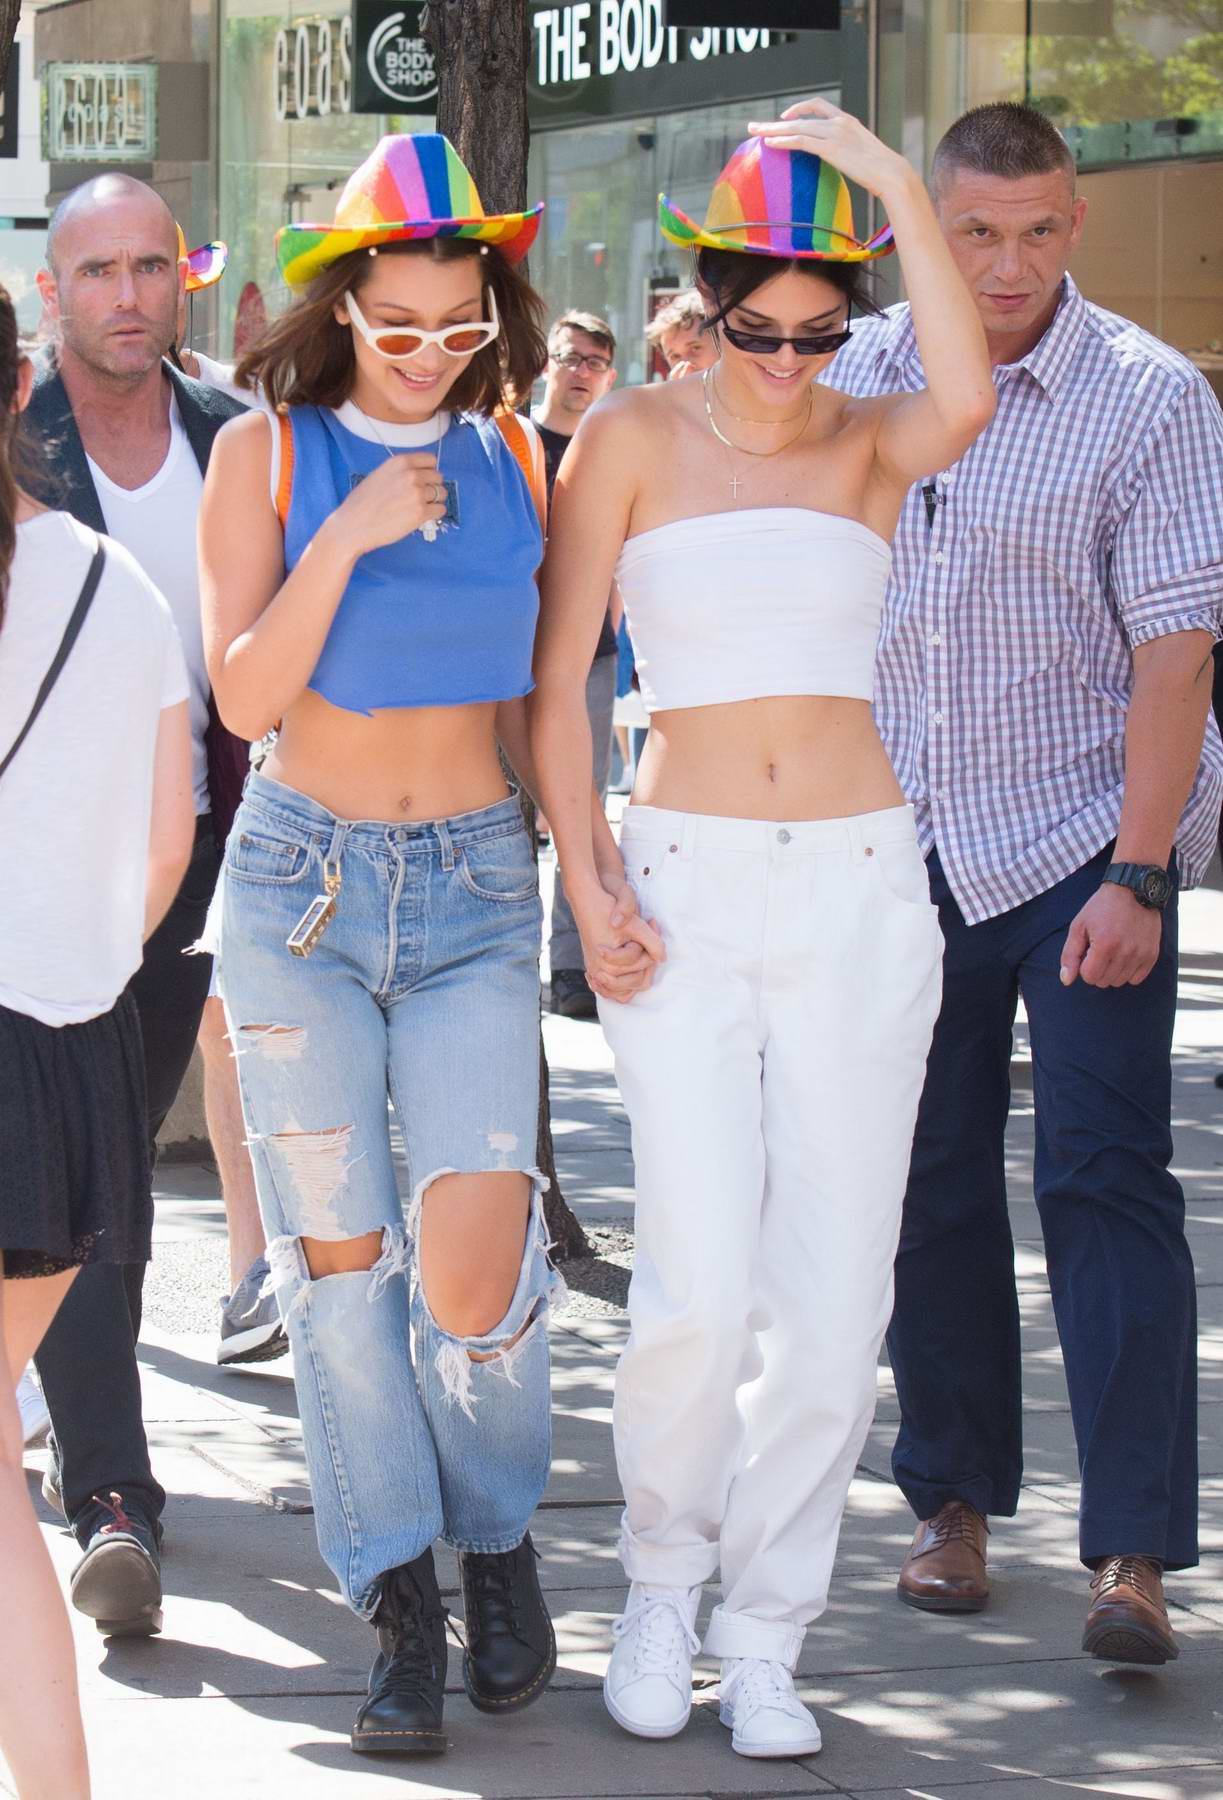 kendall jenner and bella hadid wearing rainbow hats at the ...